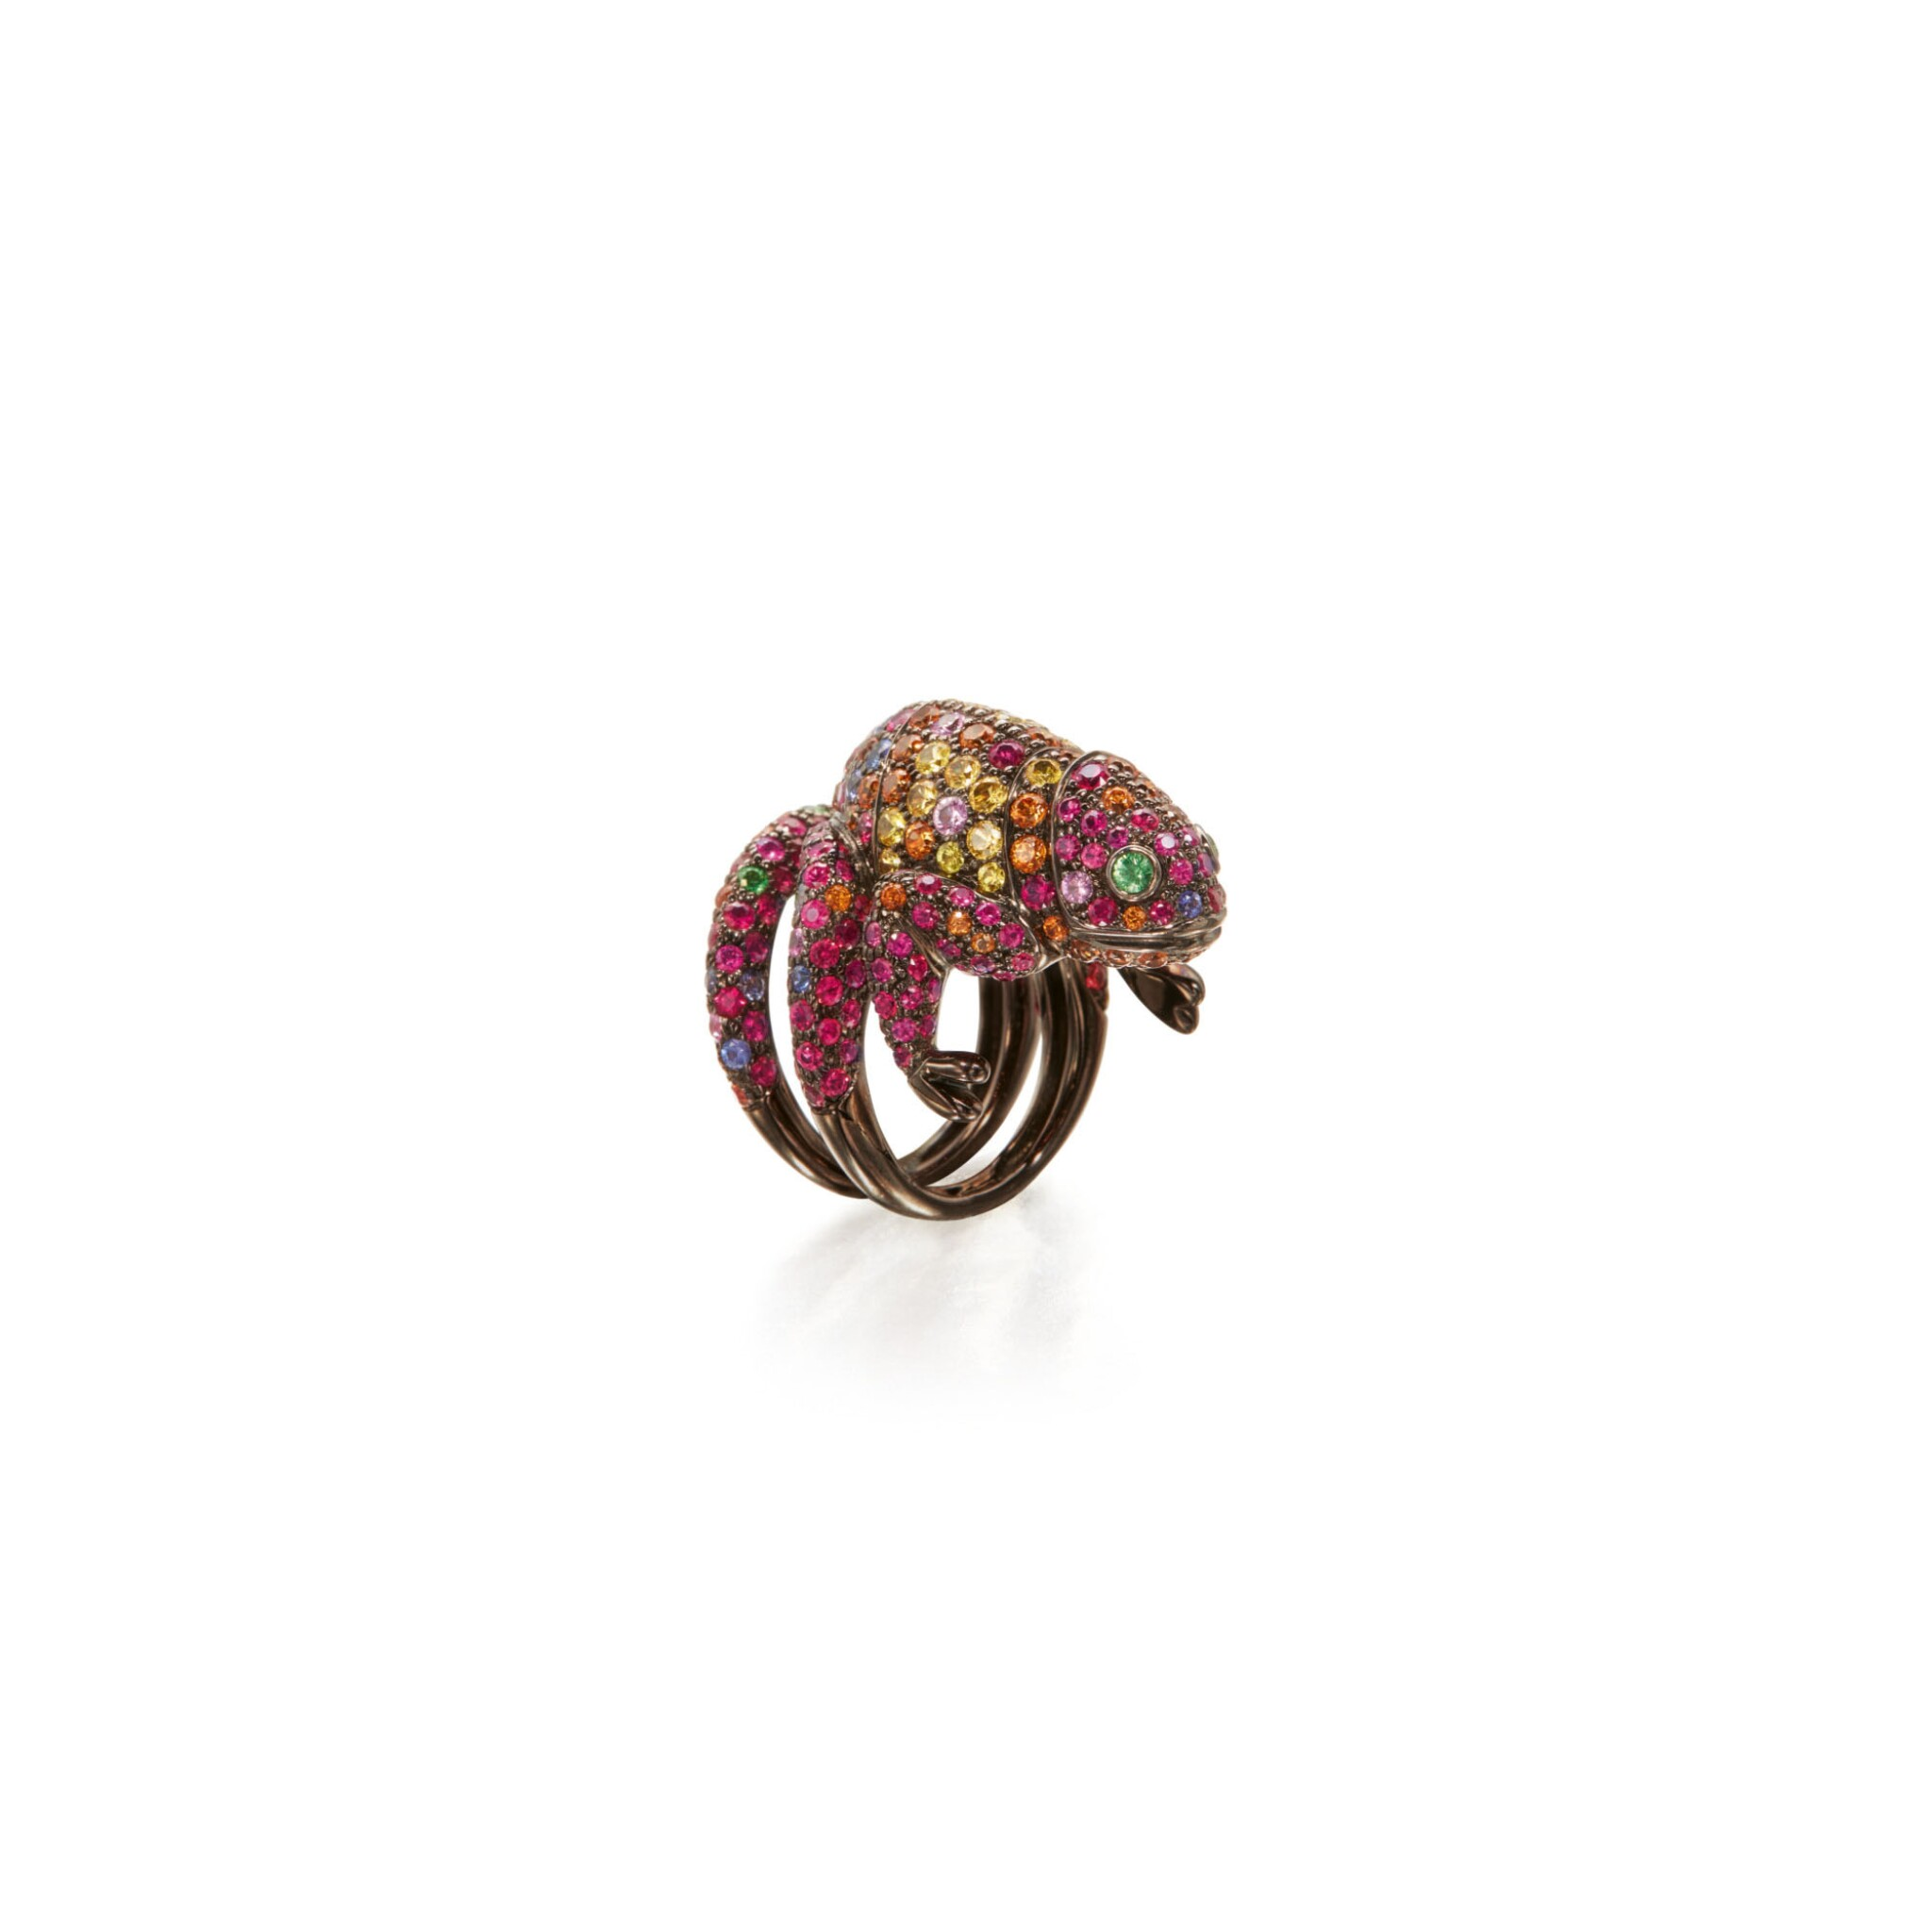 View full screen - View 1 of Lot 144. GEM-SET 'MASY' RING, BOUCHERON, FRANCE.